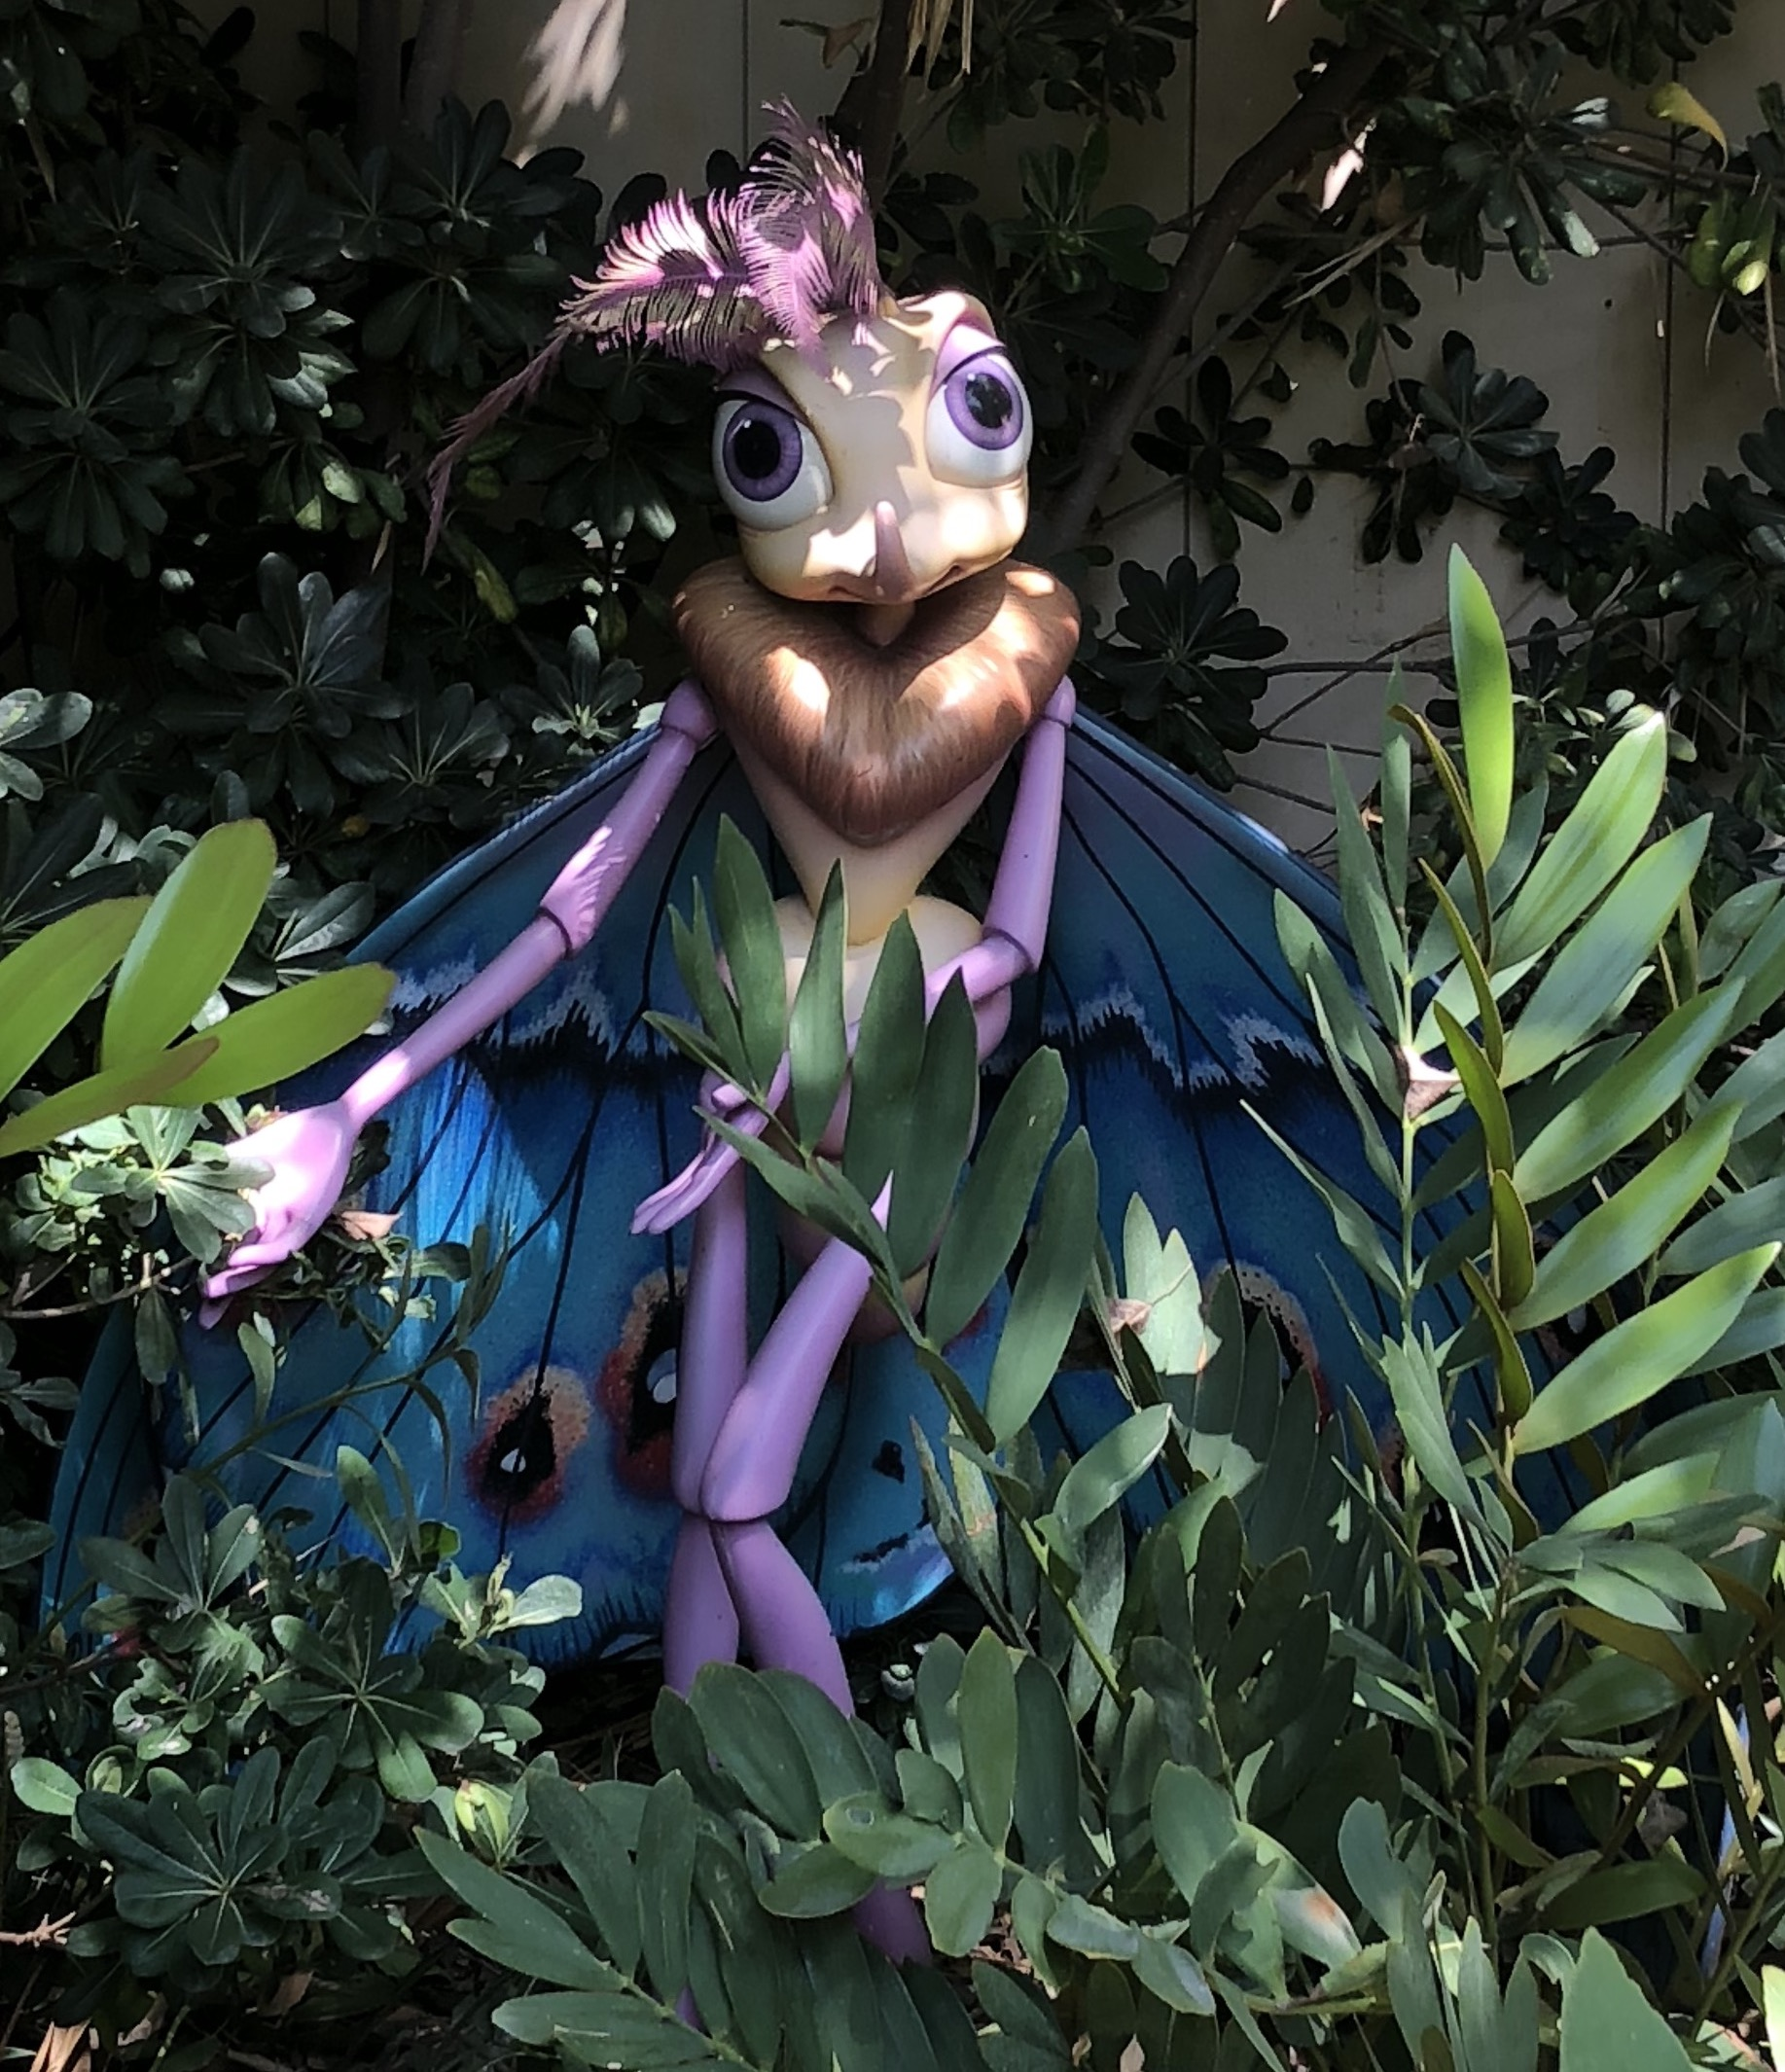 Gypsy statue in foliage at Disney's California Adventure